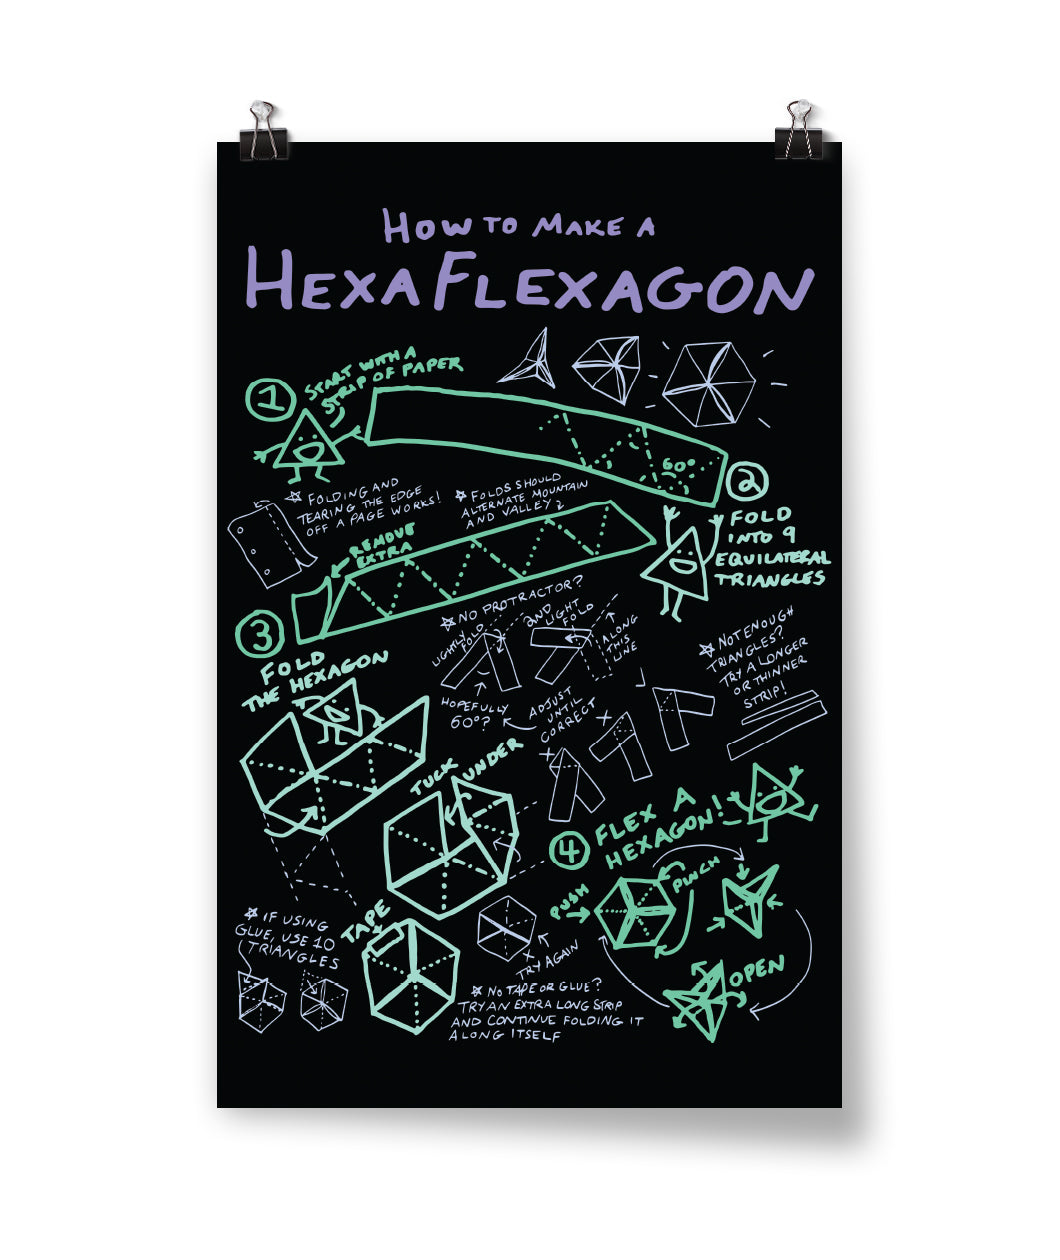 How To Make A Hexaflexagon Poster